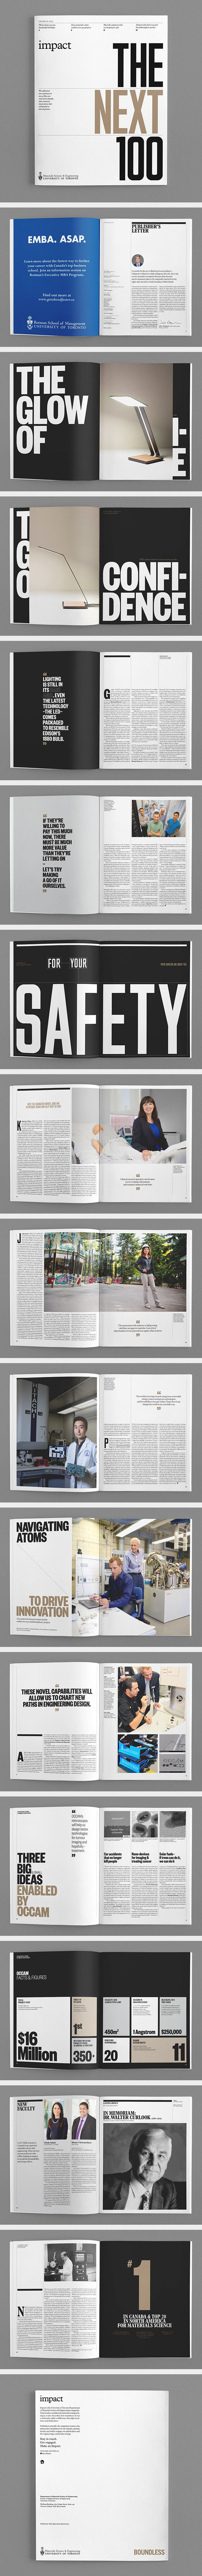 This magazine uses a three column magazine for the most part. I like how some images take up to 5 columns but living enough space in the bottom to fill it with information. One think I find unnecessary is the design elements in the gutters; I think they would look better empty rather than with the lines. AR